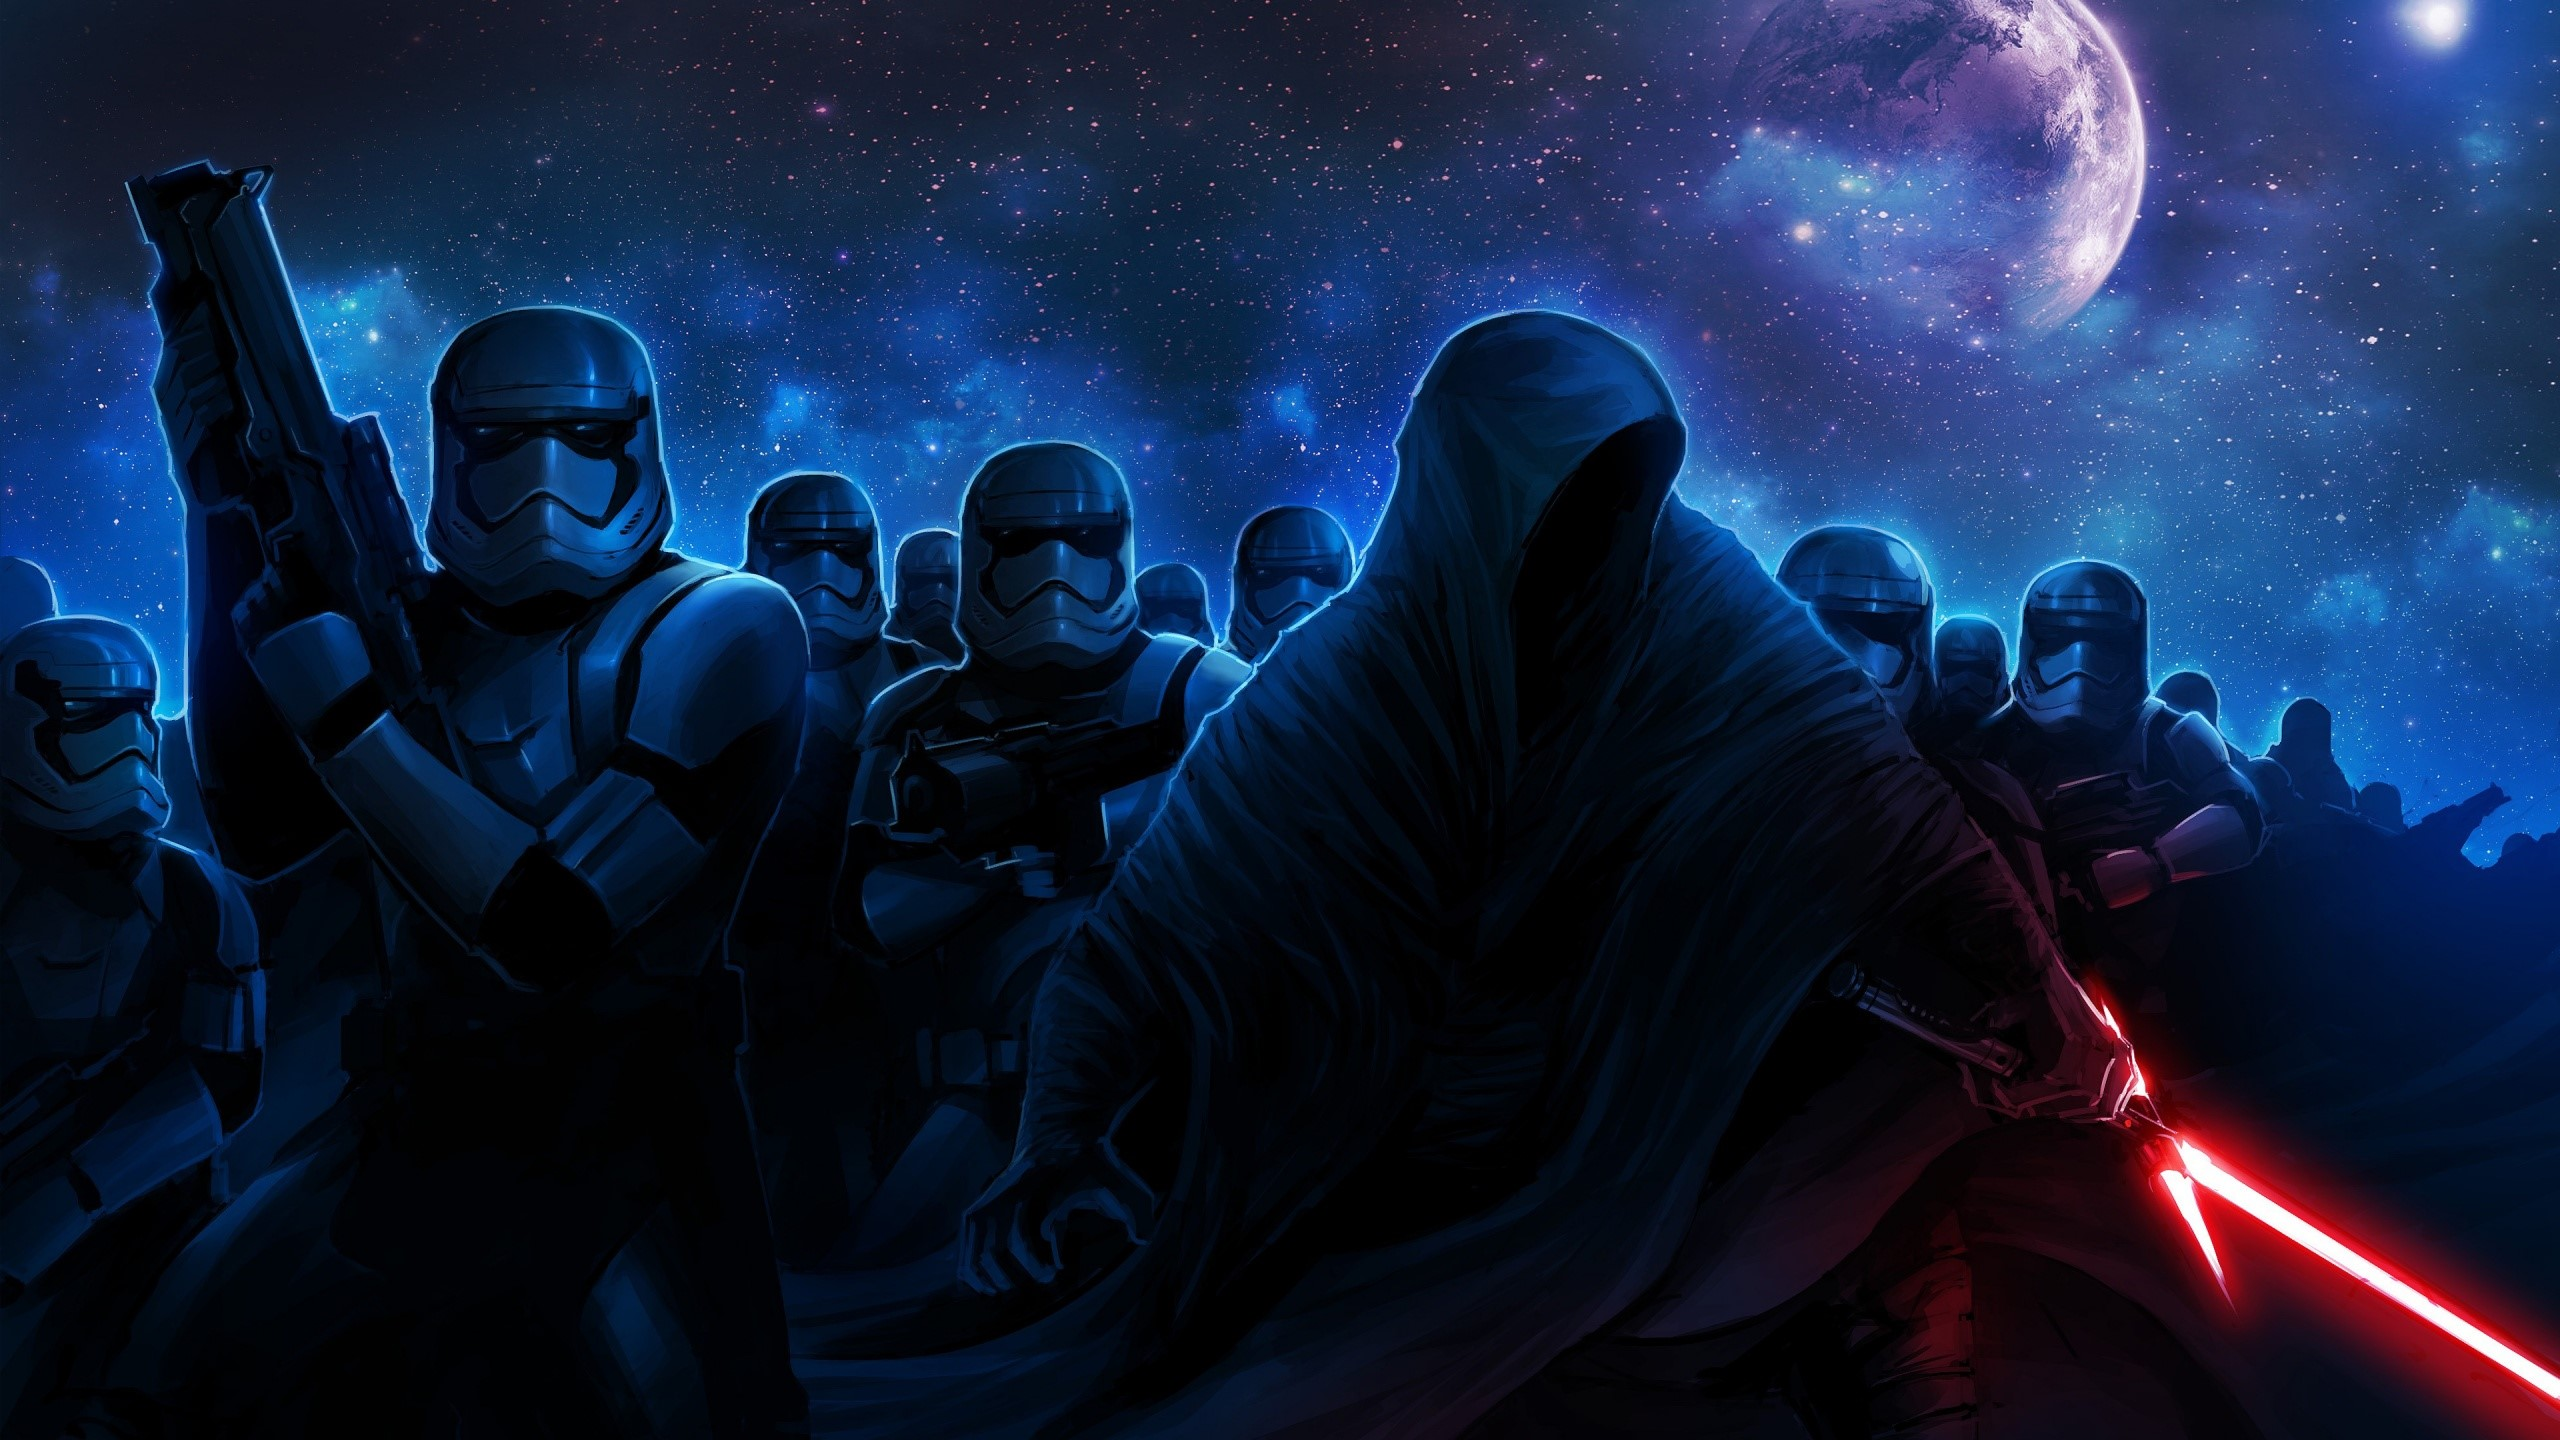 Stormtroopers And Darth Vader Wallpaper 2k Quad Hd Id 1654